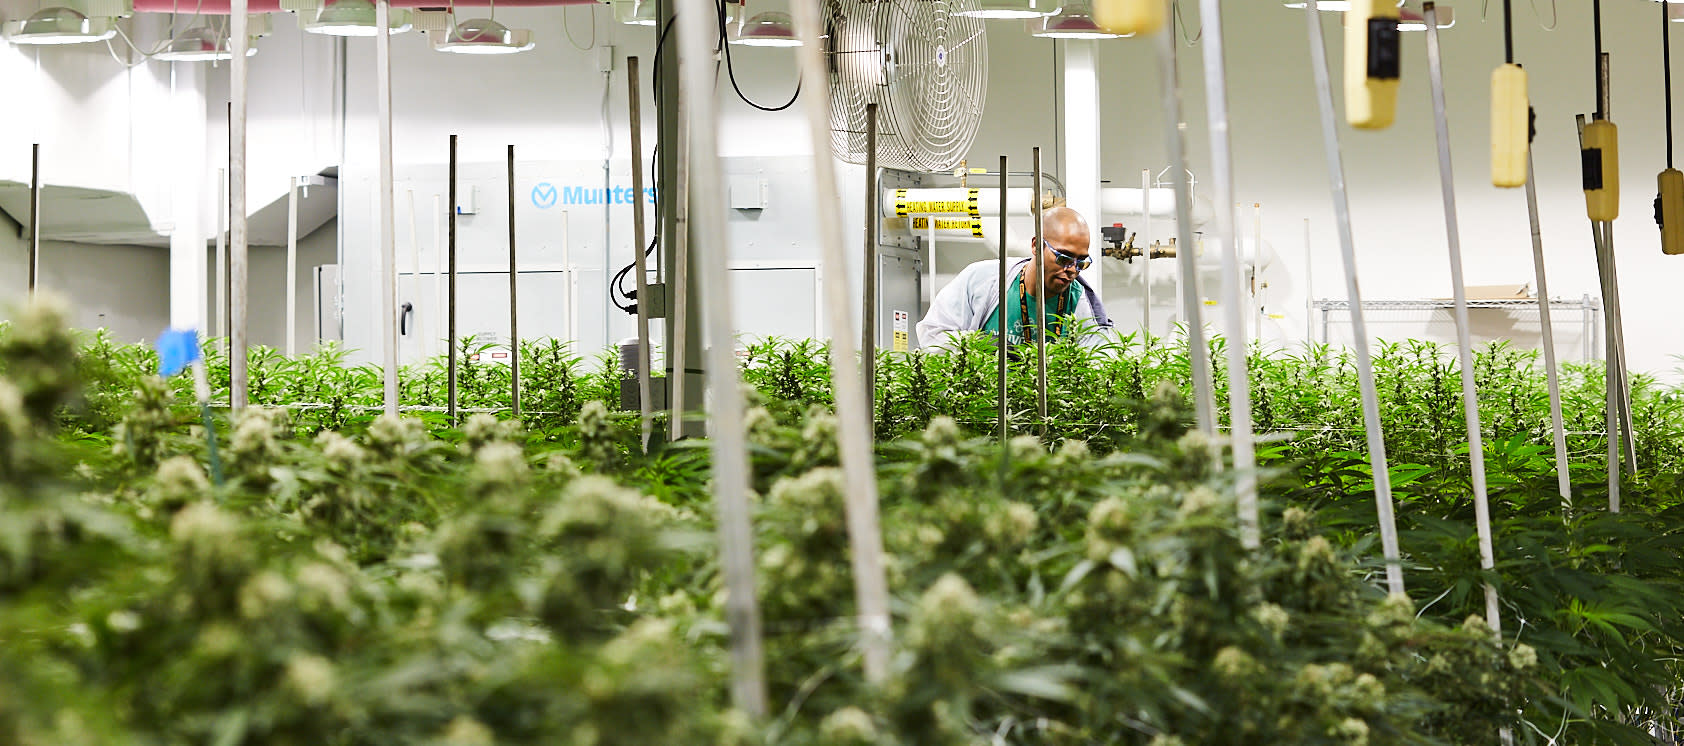 De-fanning plants at the Native Roots Cannabis Co. grow facility in Denver, CO.